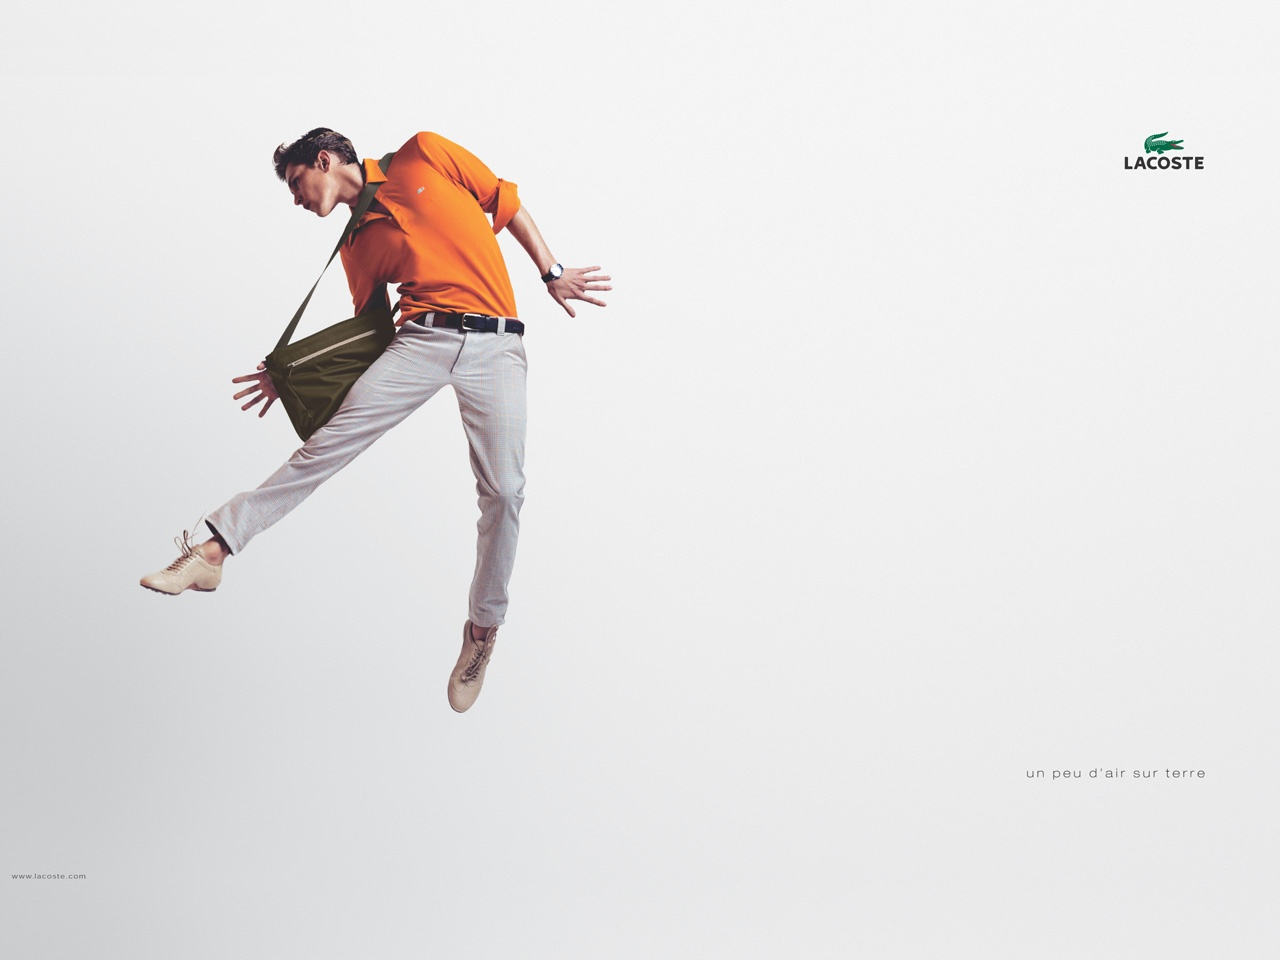 1280x720 LACOSTE Flying Man Vimeo Cover Image